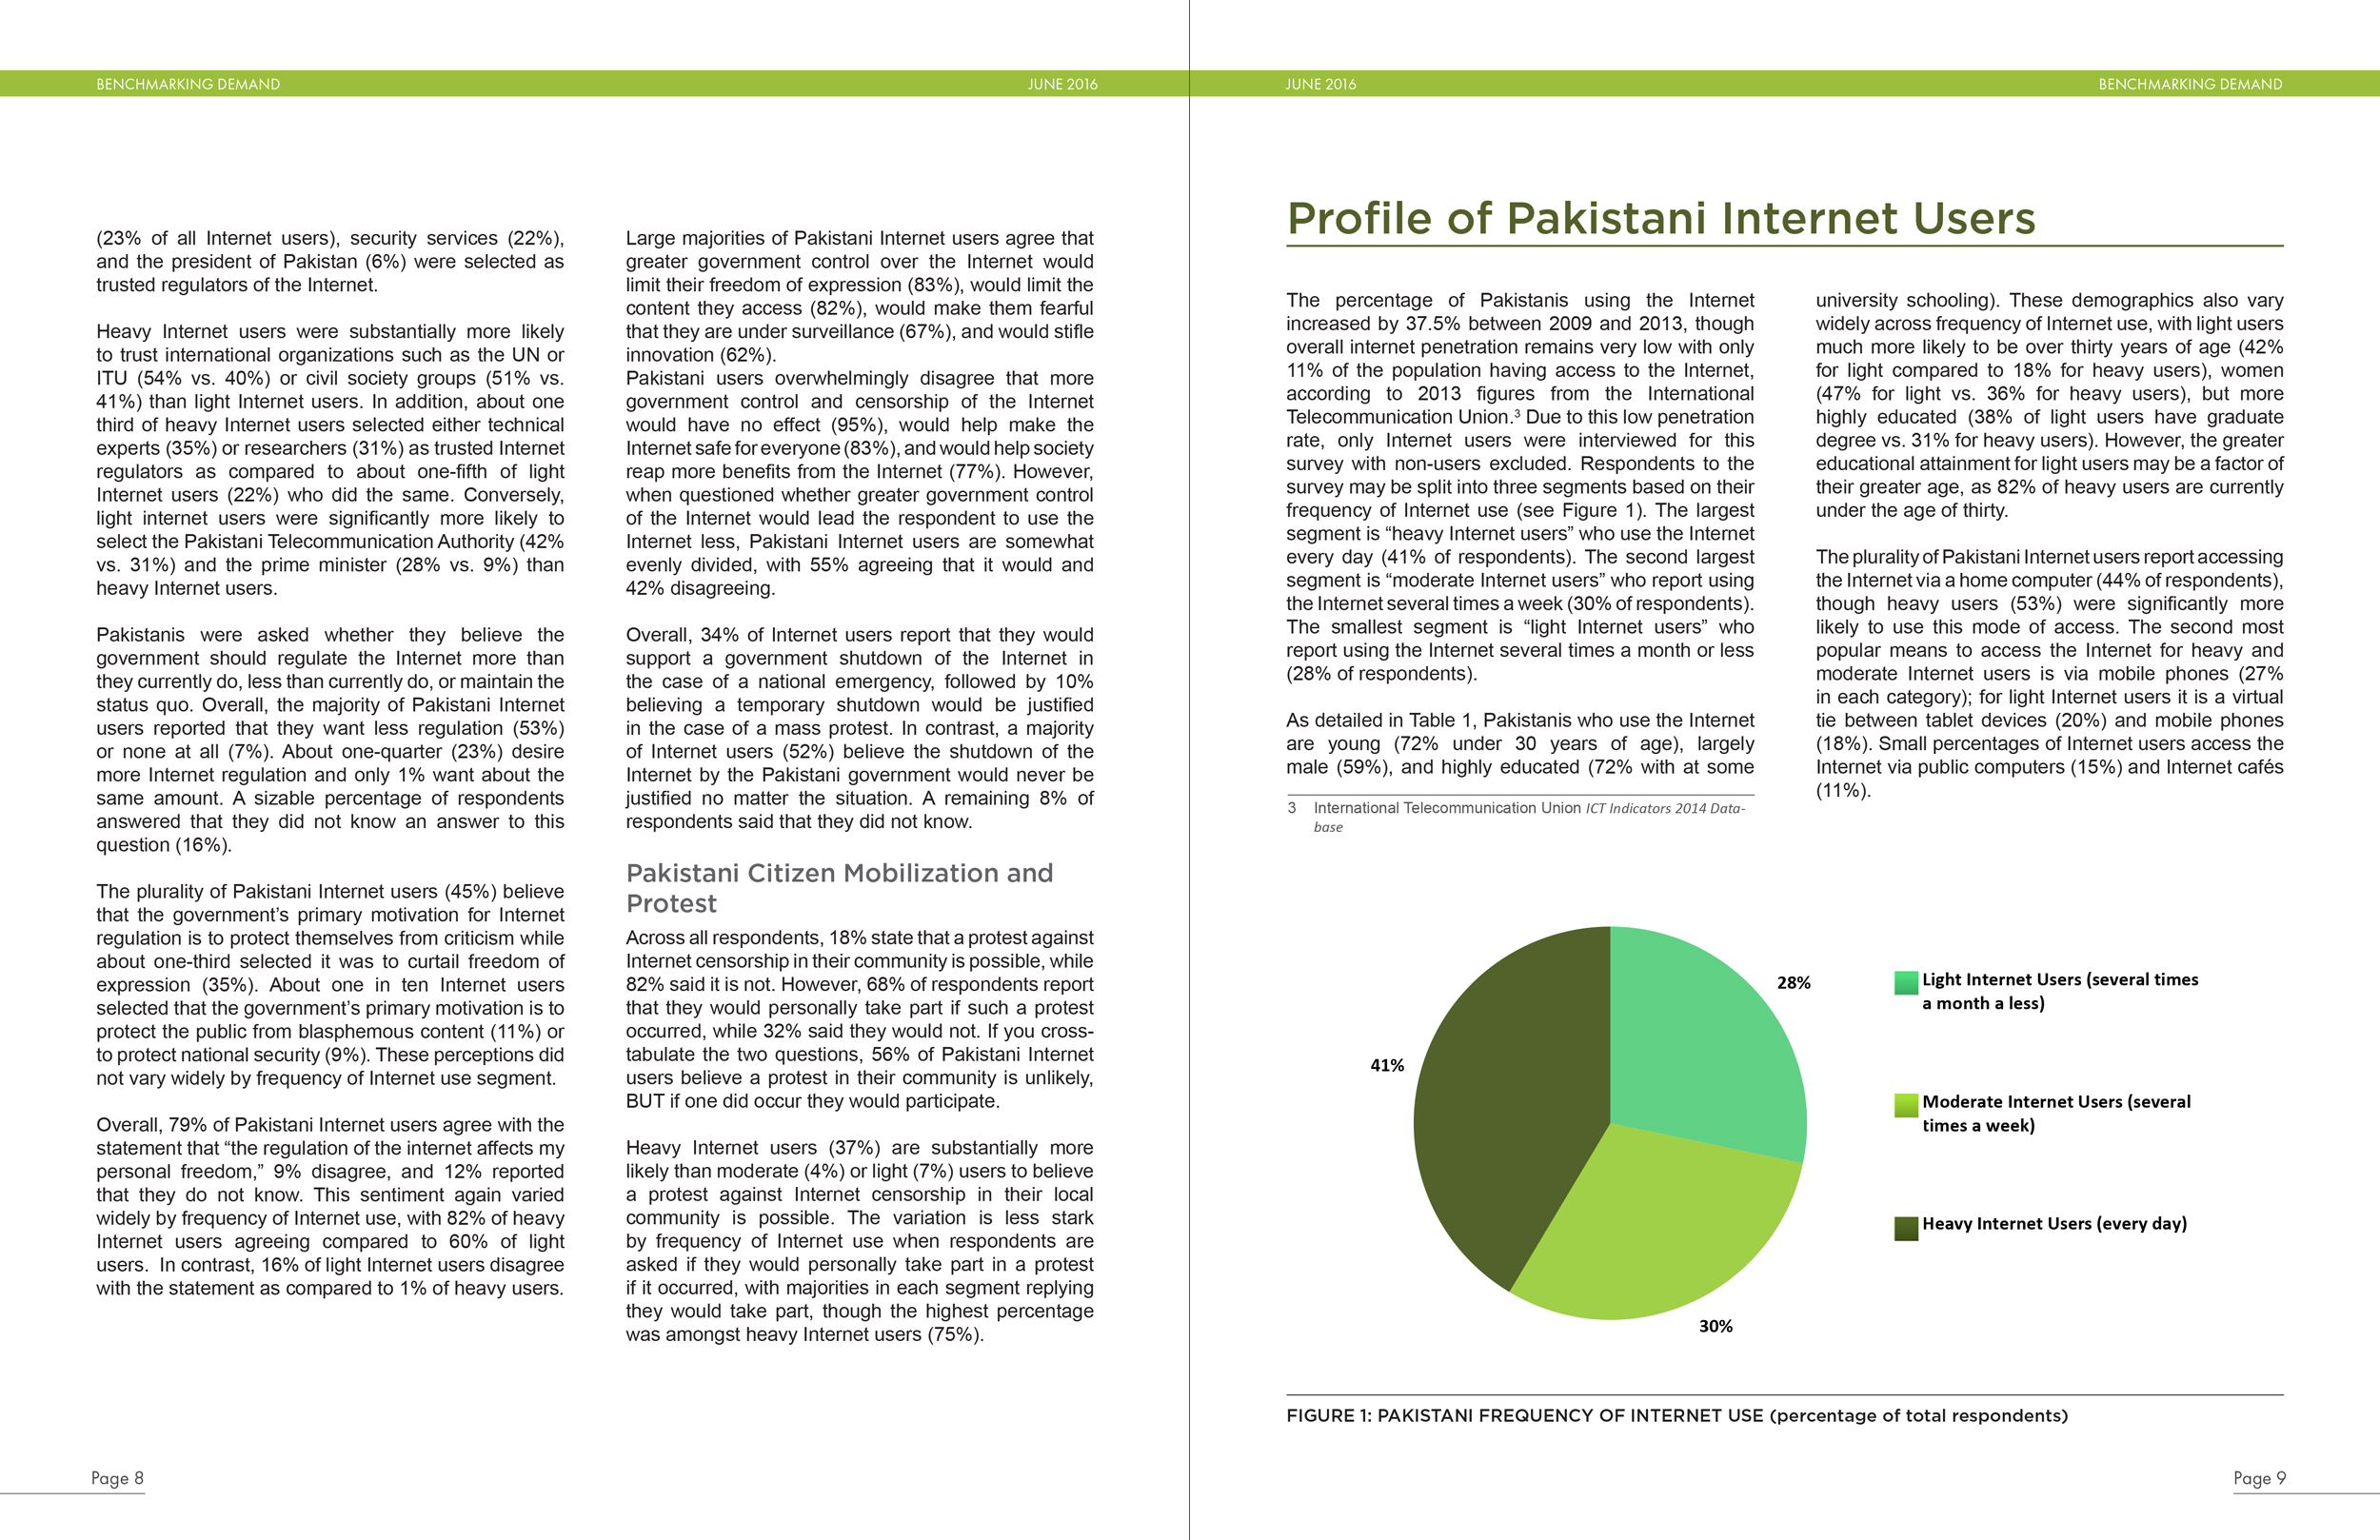 Report interior pages (Center for Global Communication Studies)